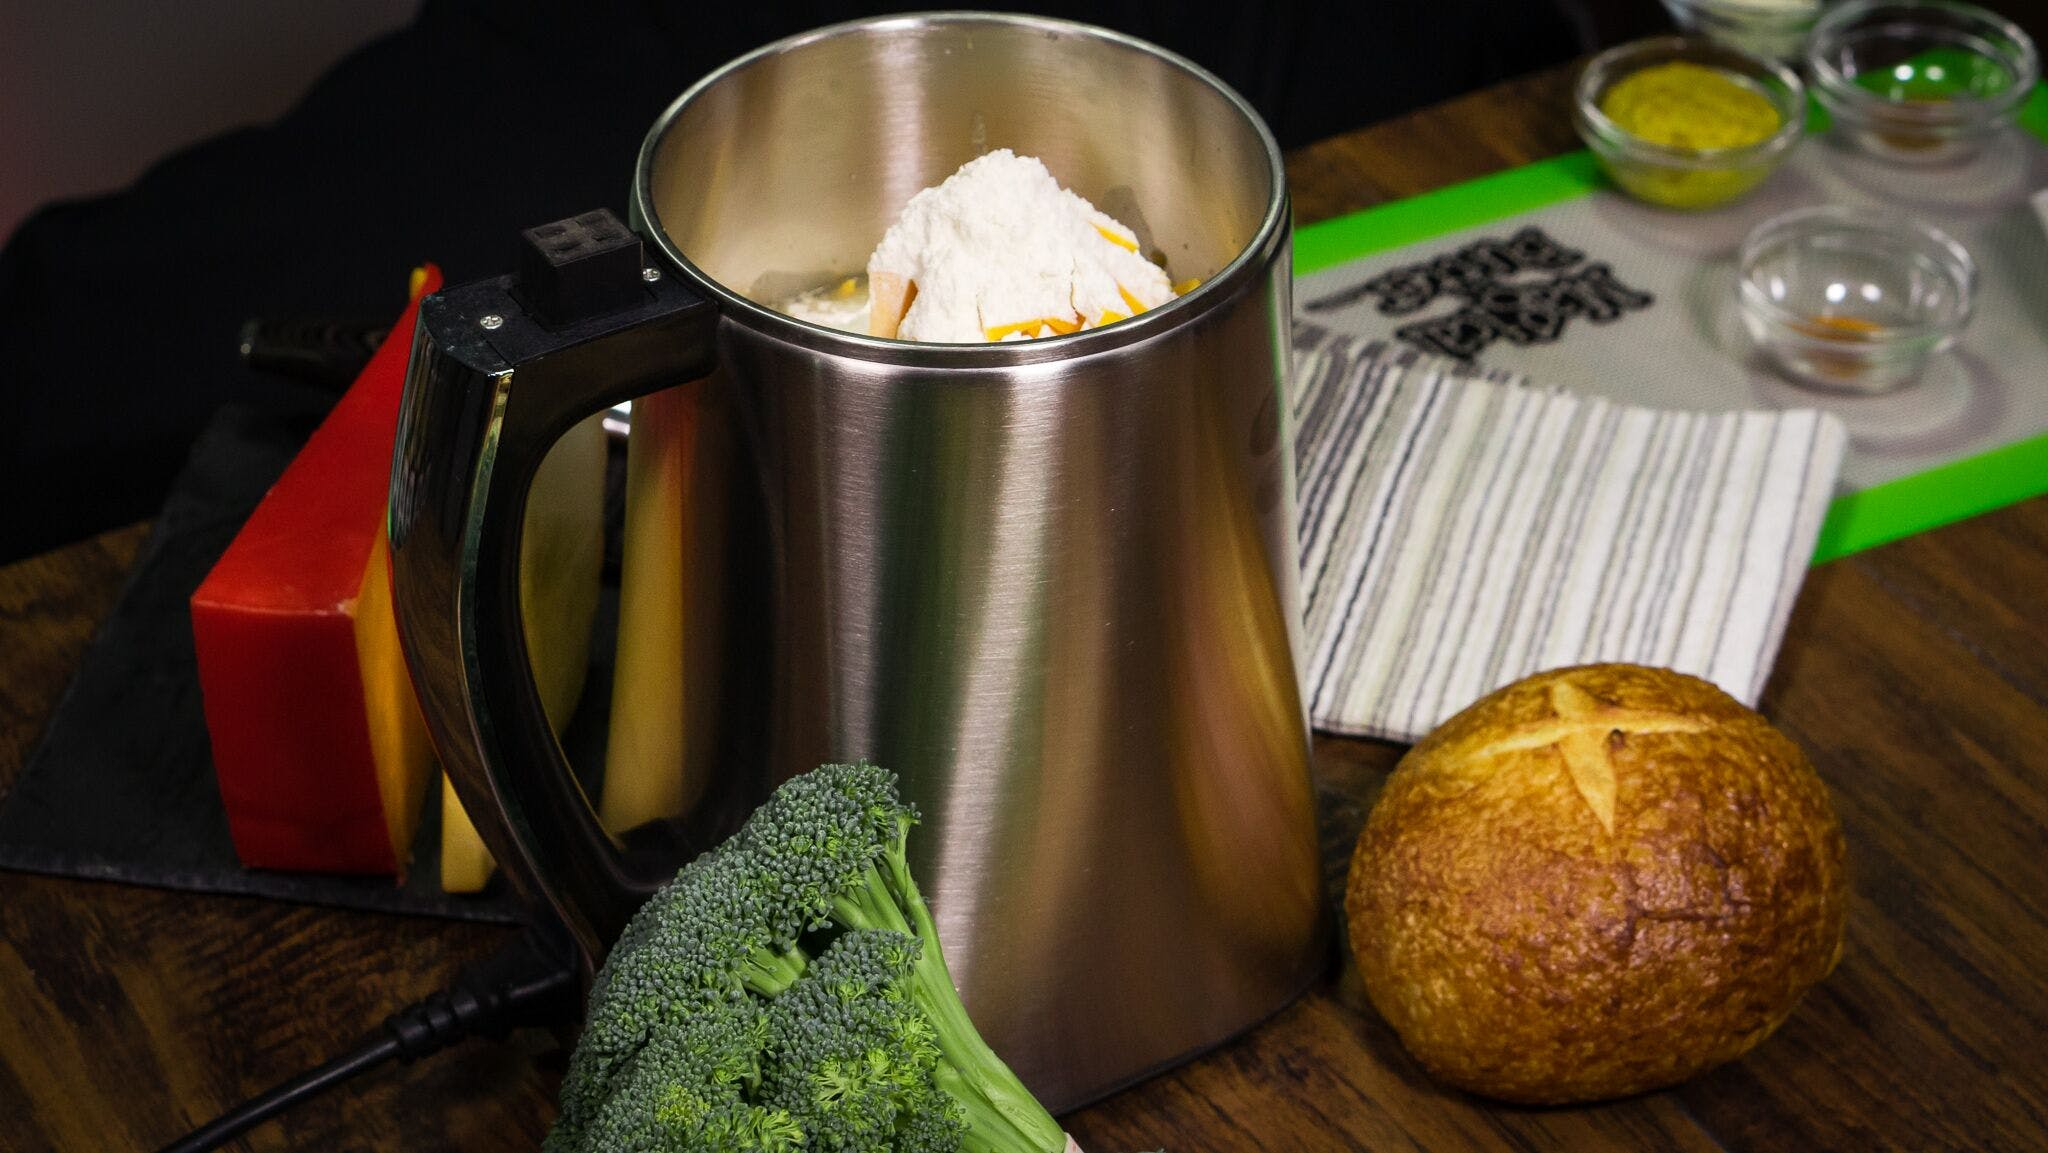 Y3jia8cQ 5 Reasons The MagicalButter Machine Is A Must Have When Youre Cooking With Cannabis